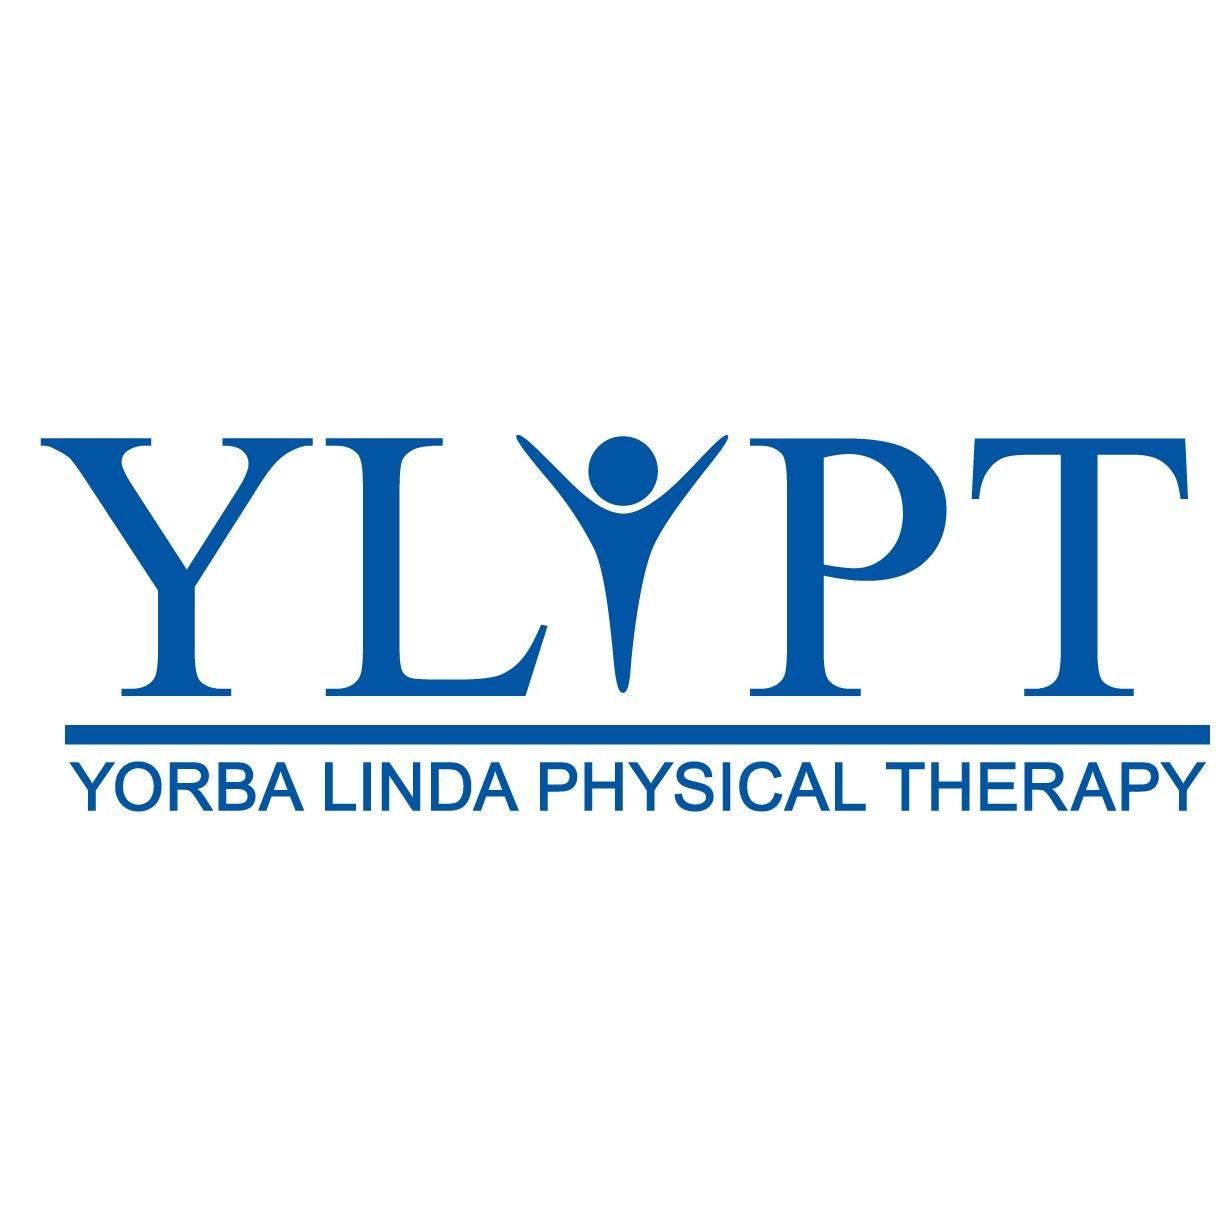 Yorba Linda Physical Therapy